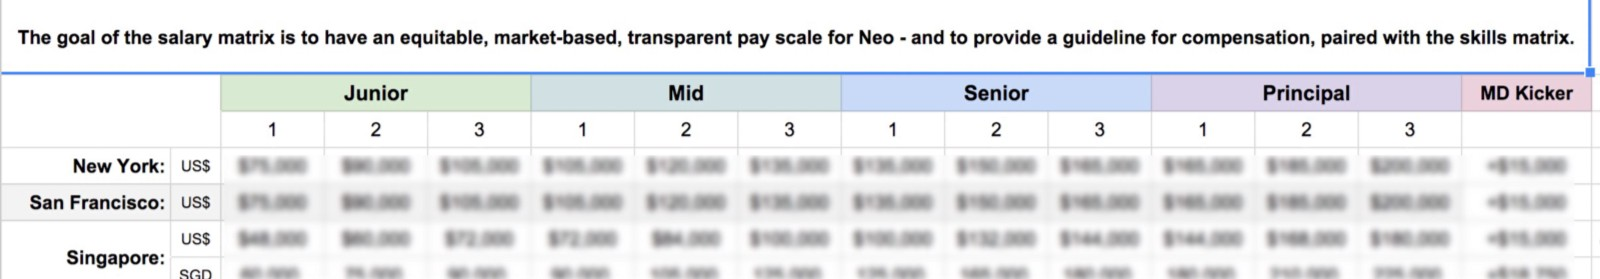 Reduce Bias And Resentment With A Transparent Salary And Skills Matrix